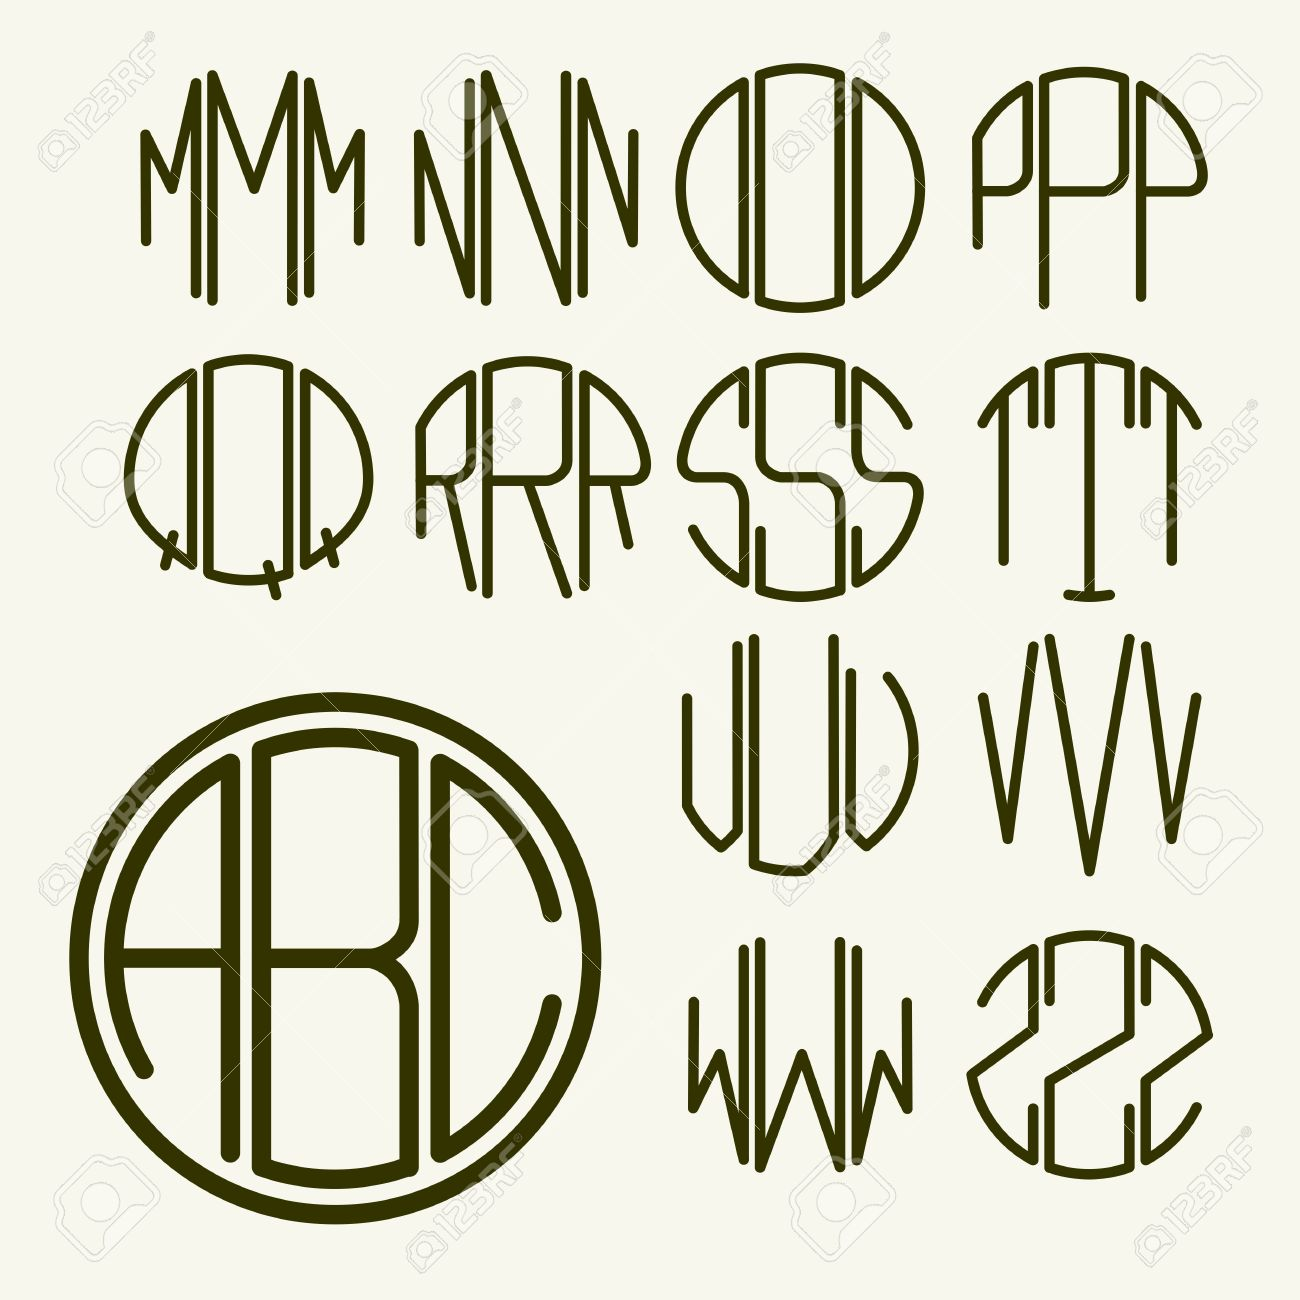 Set 2 template letters to create a monogram of three letters inscribed in a circle in Art Nouveau style - 38198133